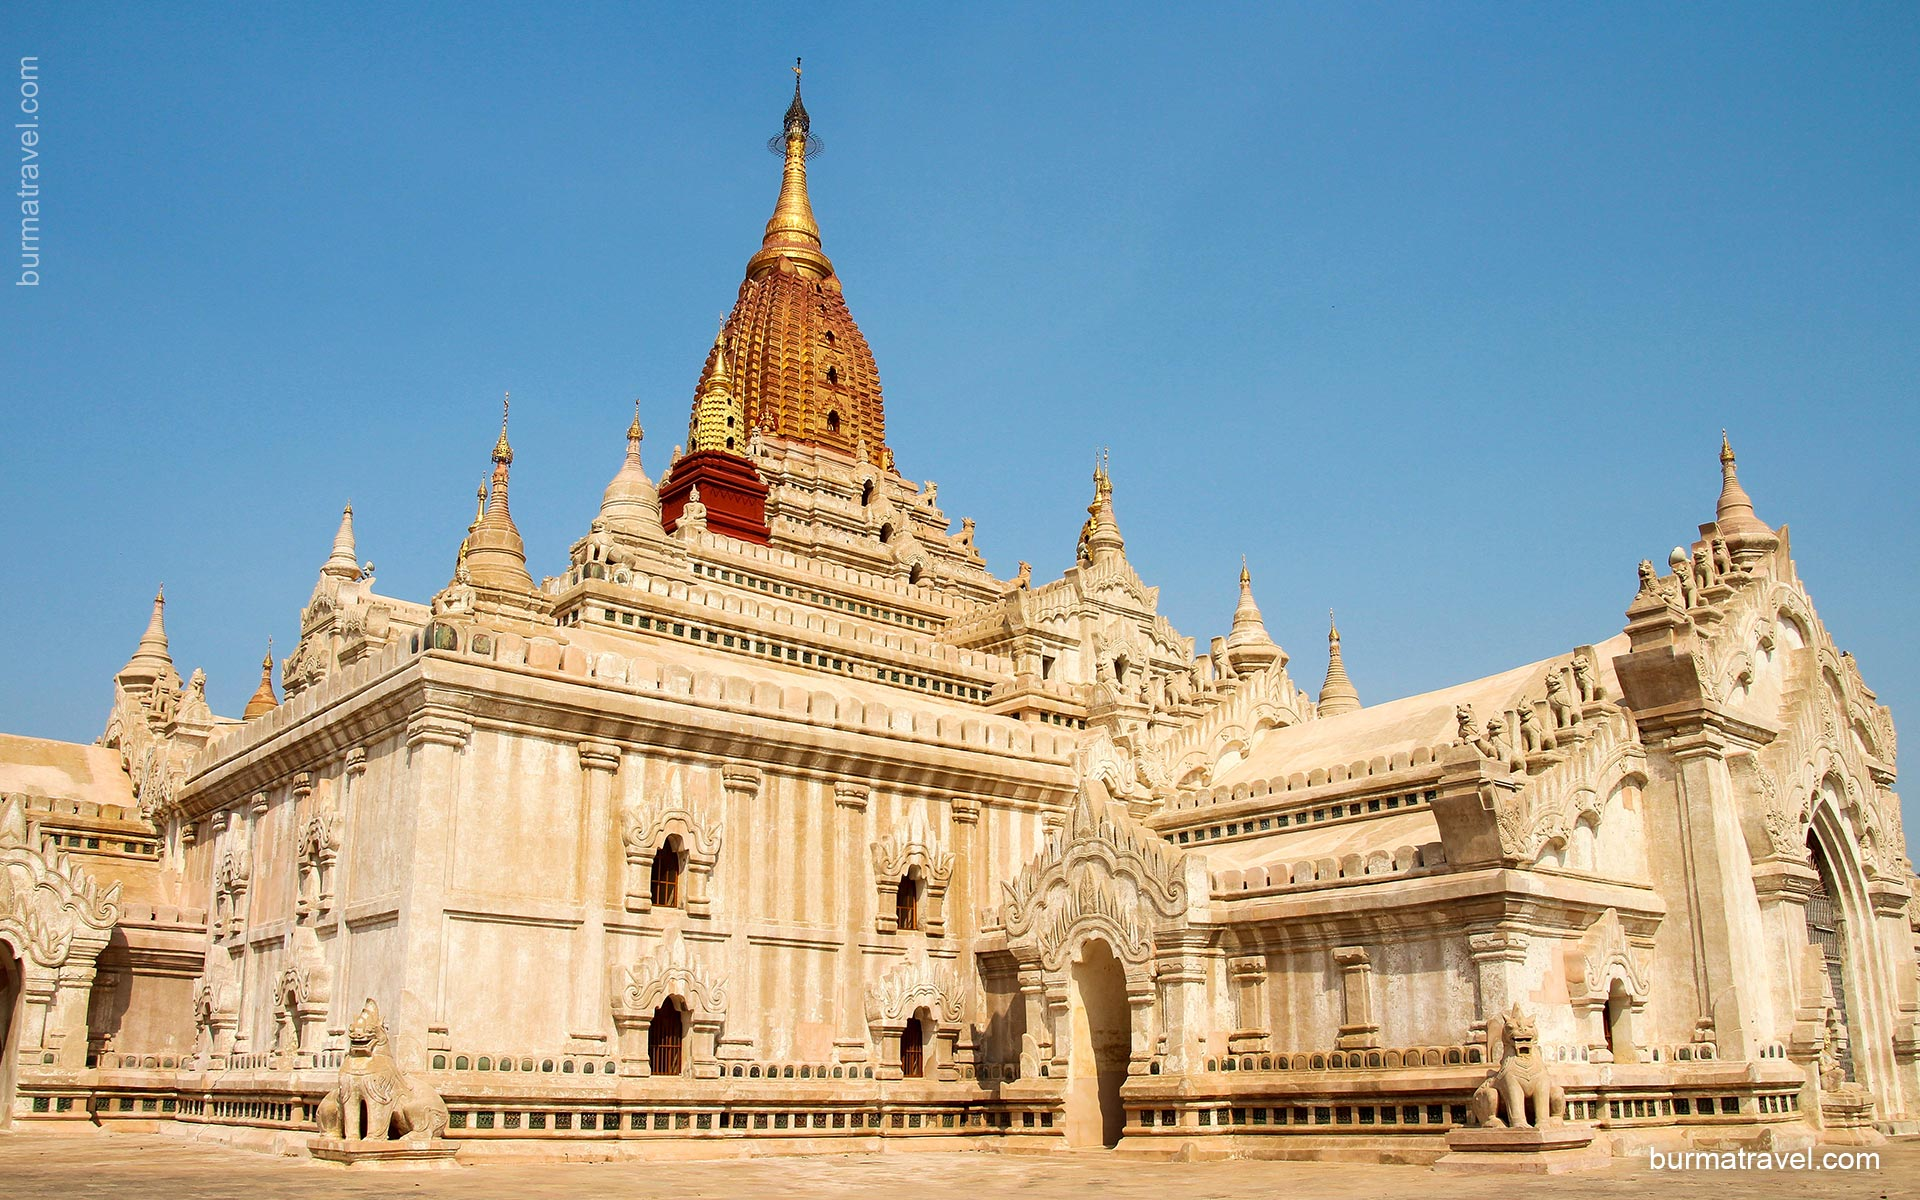 bagan-the-ancient-land-of-southeast-asia-2